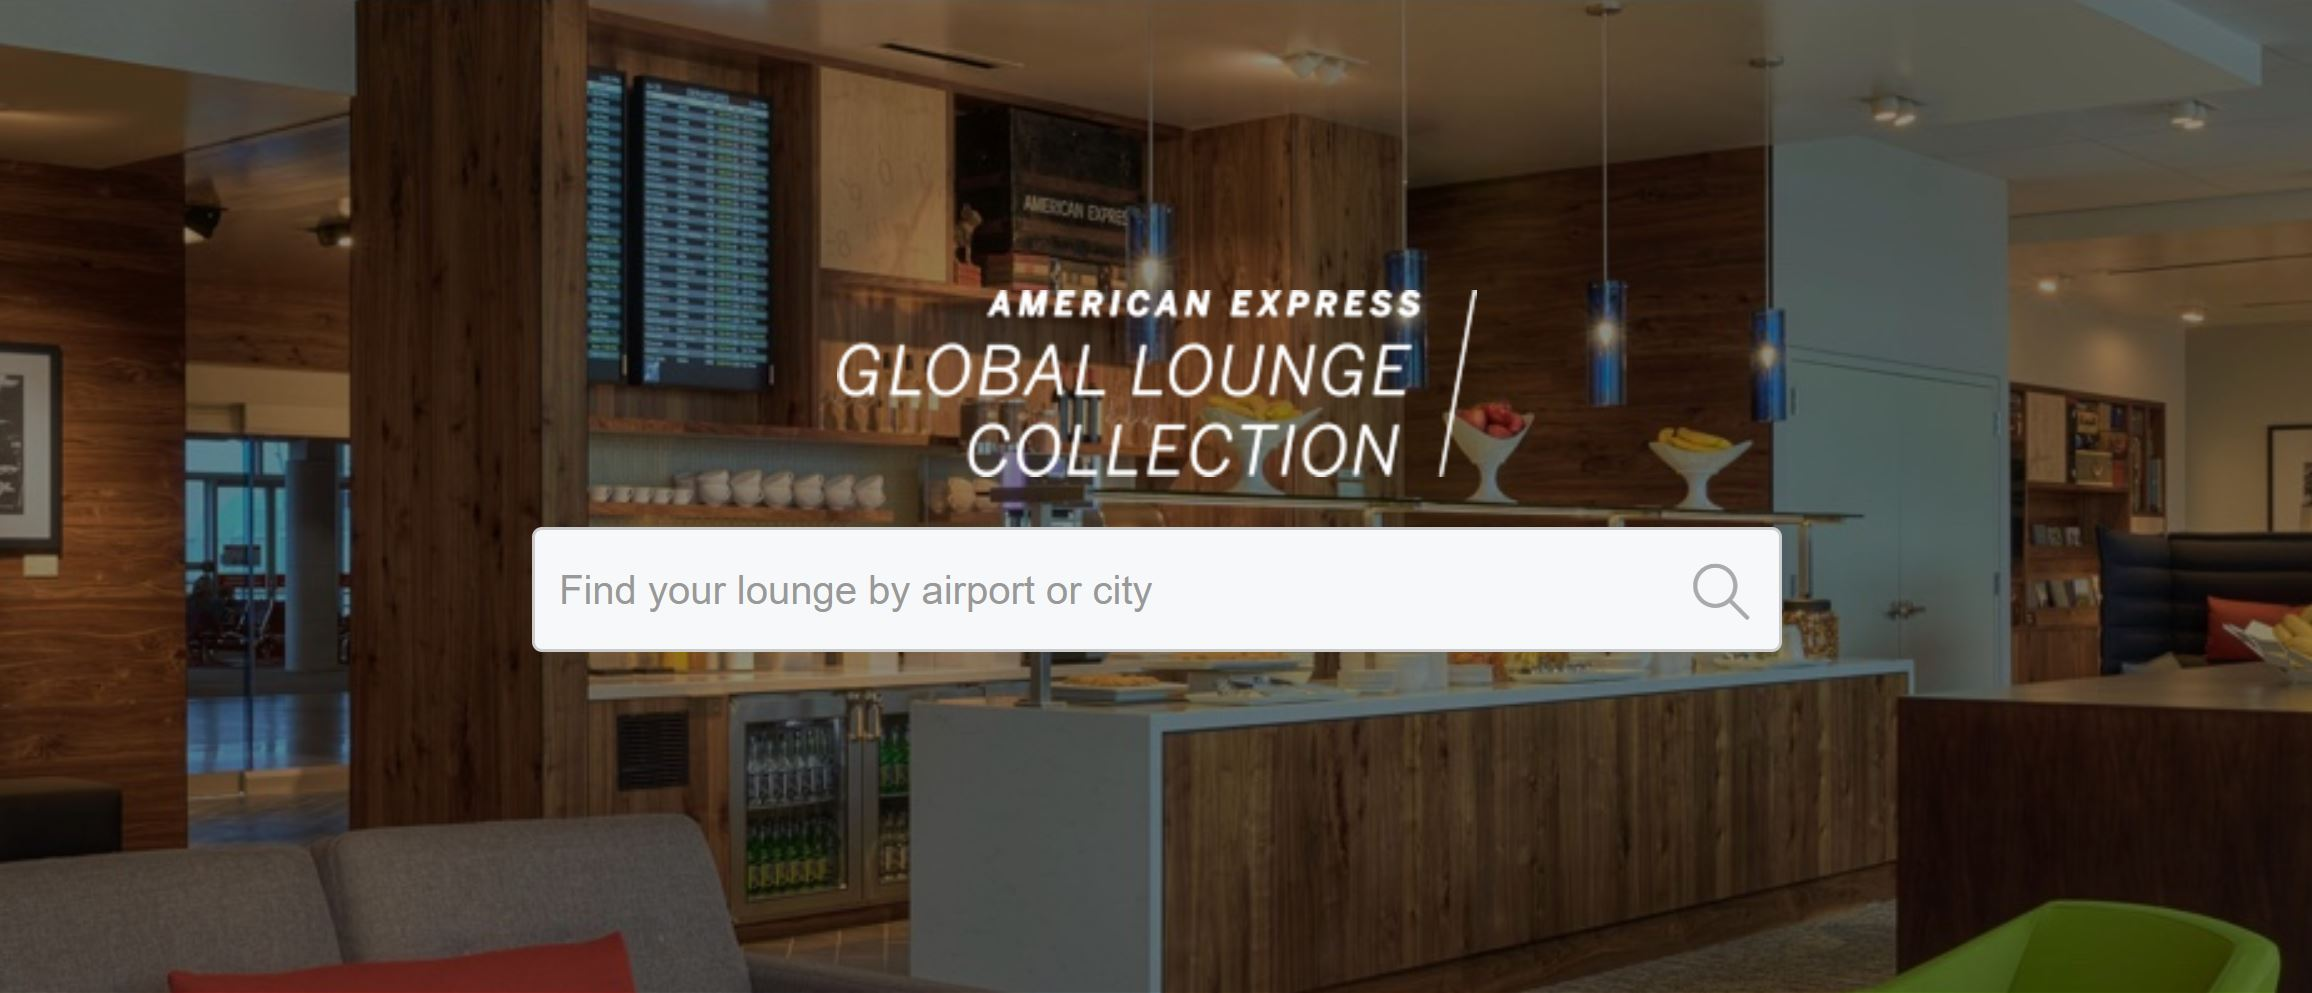 American Express Global Lounge Collection